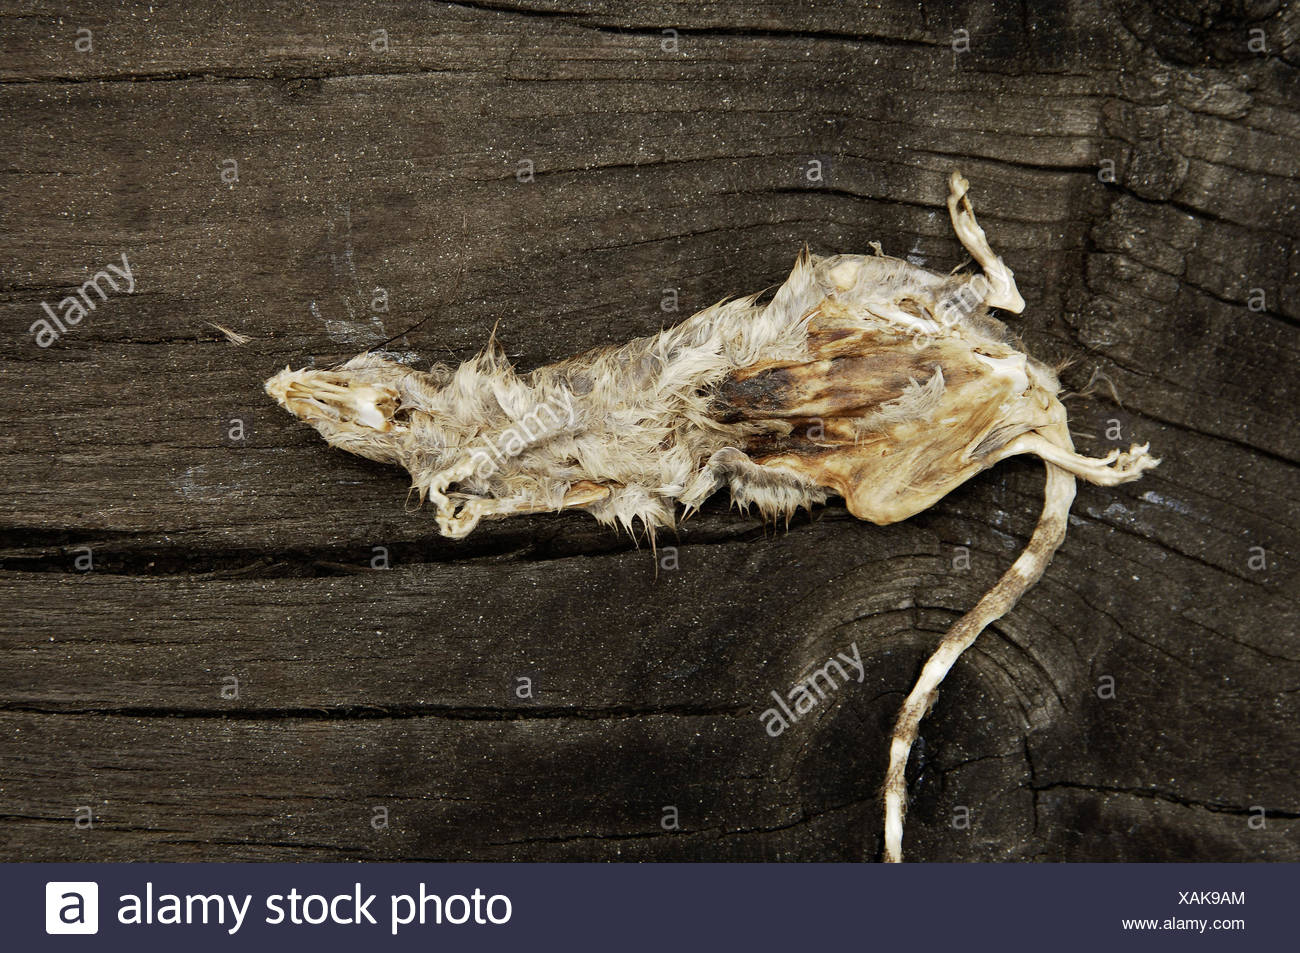 Rat, poisons, rodents, animal, mammal, deadly, death, expiration, sepsis, rot, disgust, rat's pest, pest, vermin, - Stock Image